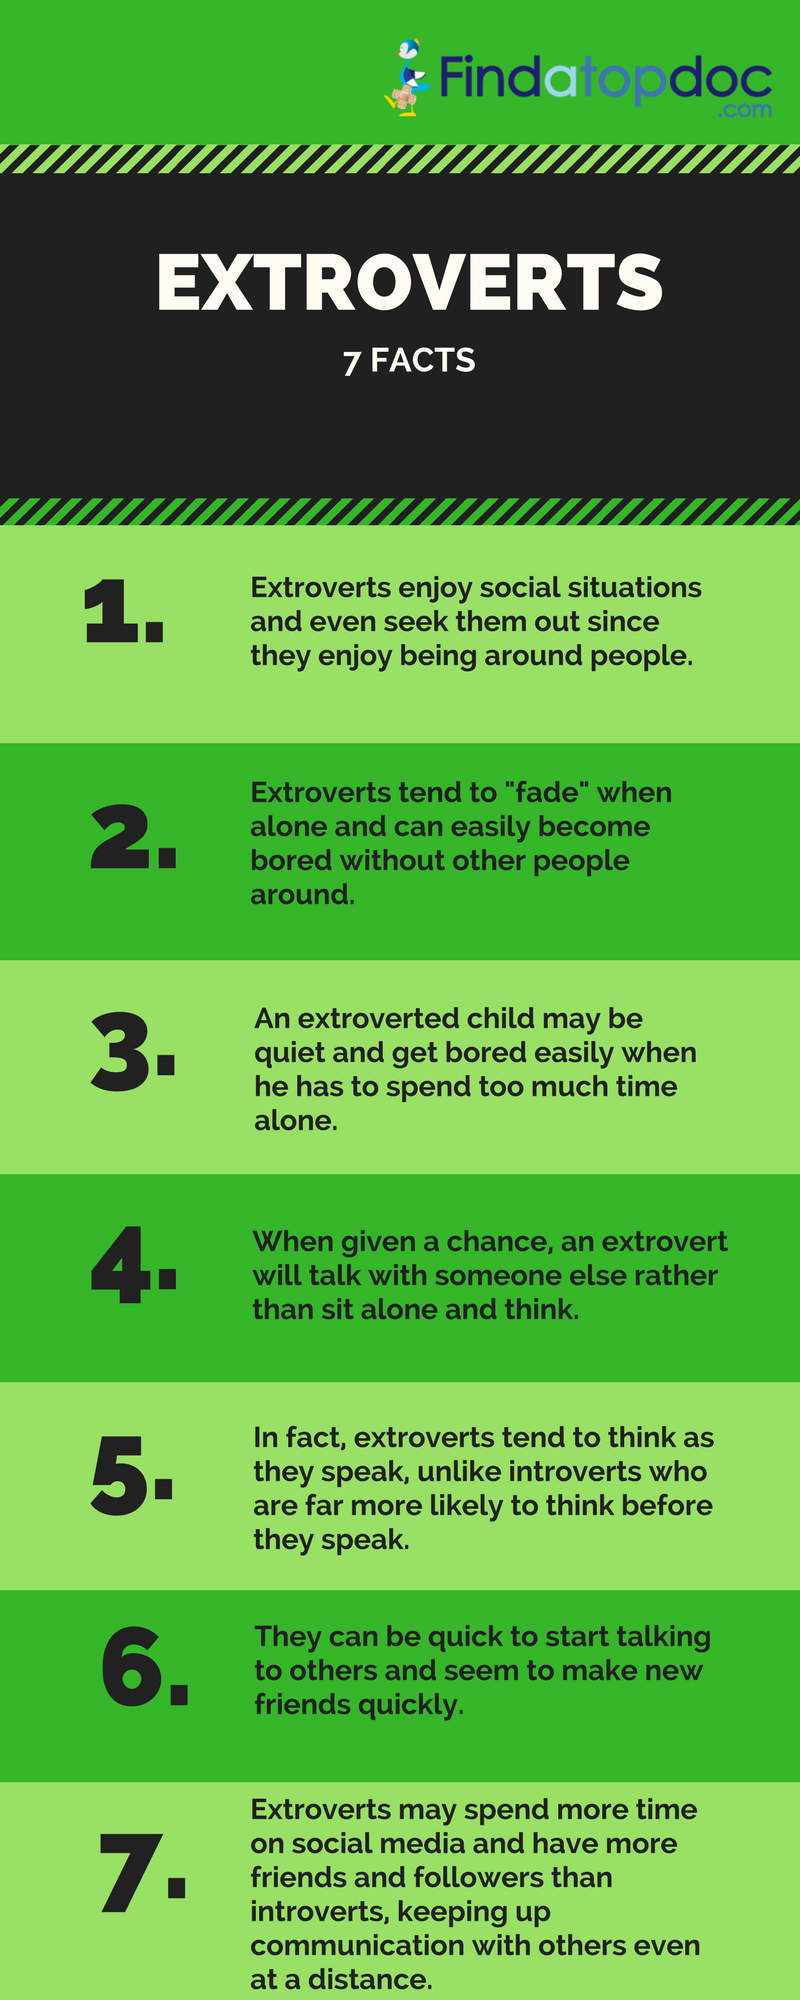 7 Facts About Extroverts